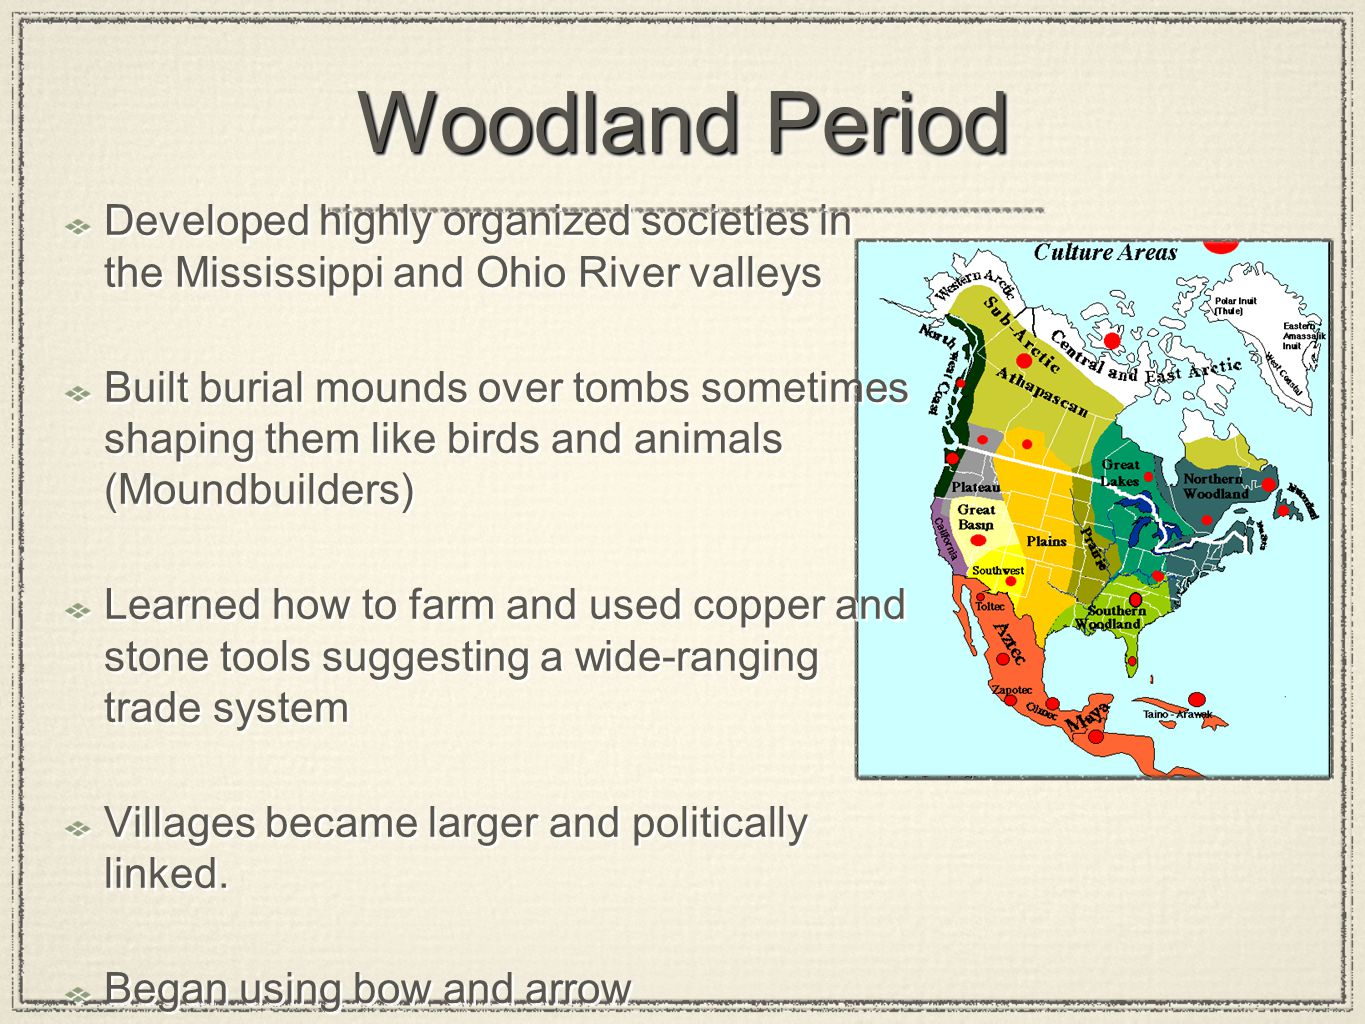 Woodland Period Developed highly organized societies in the Mississippi and Ohio River valleys.